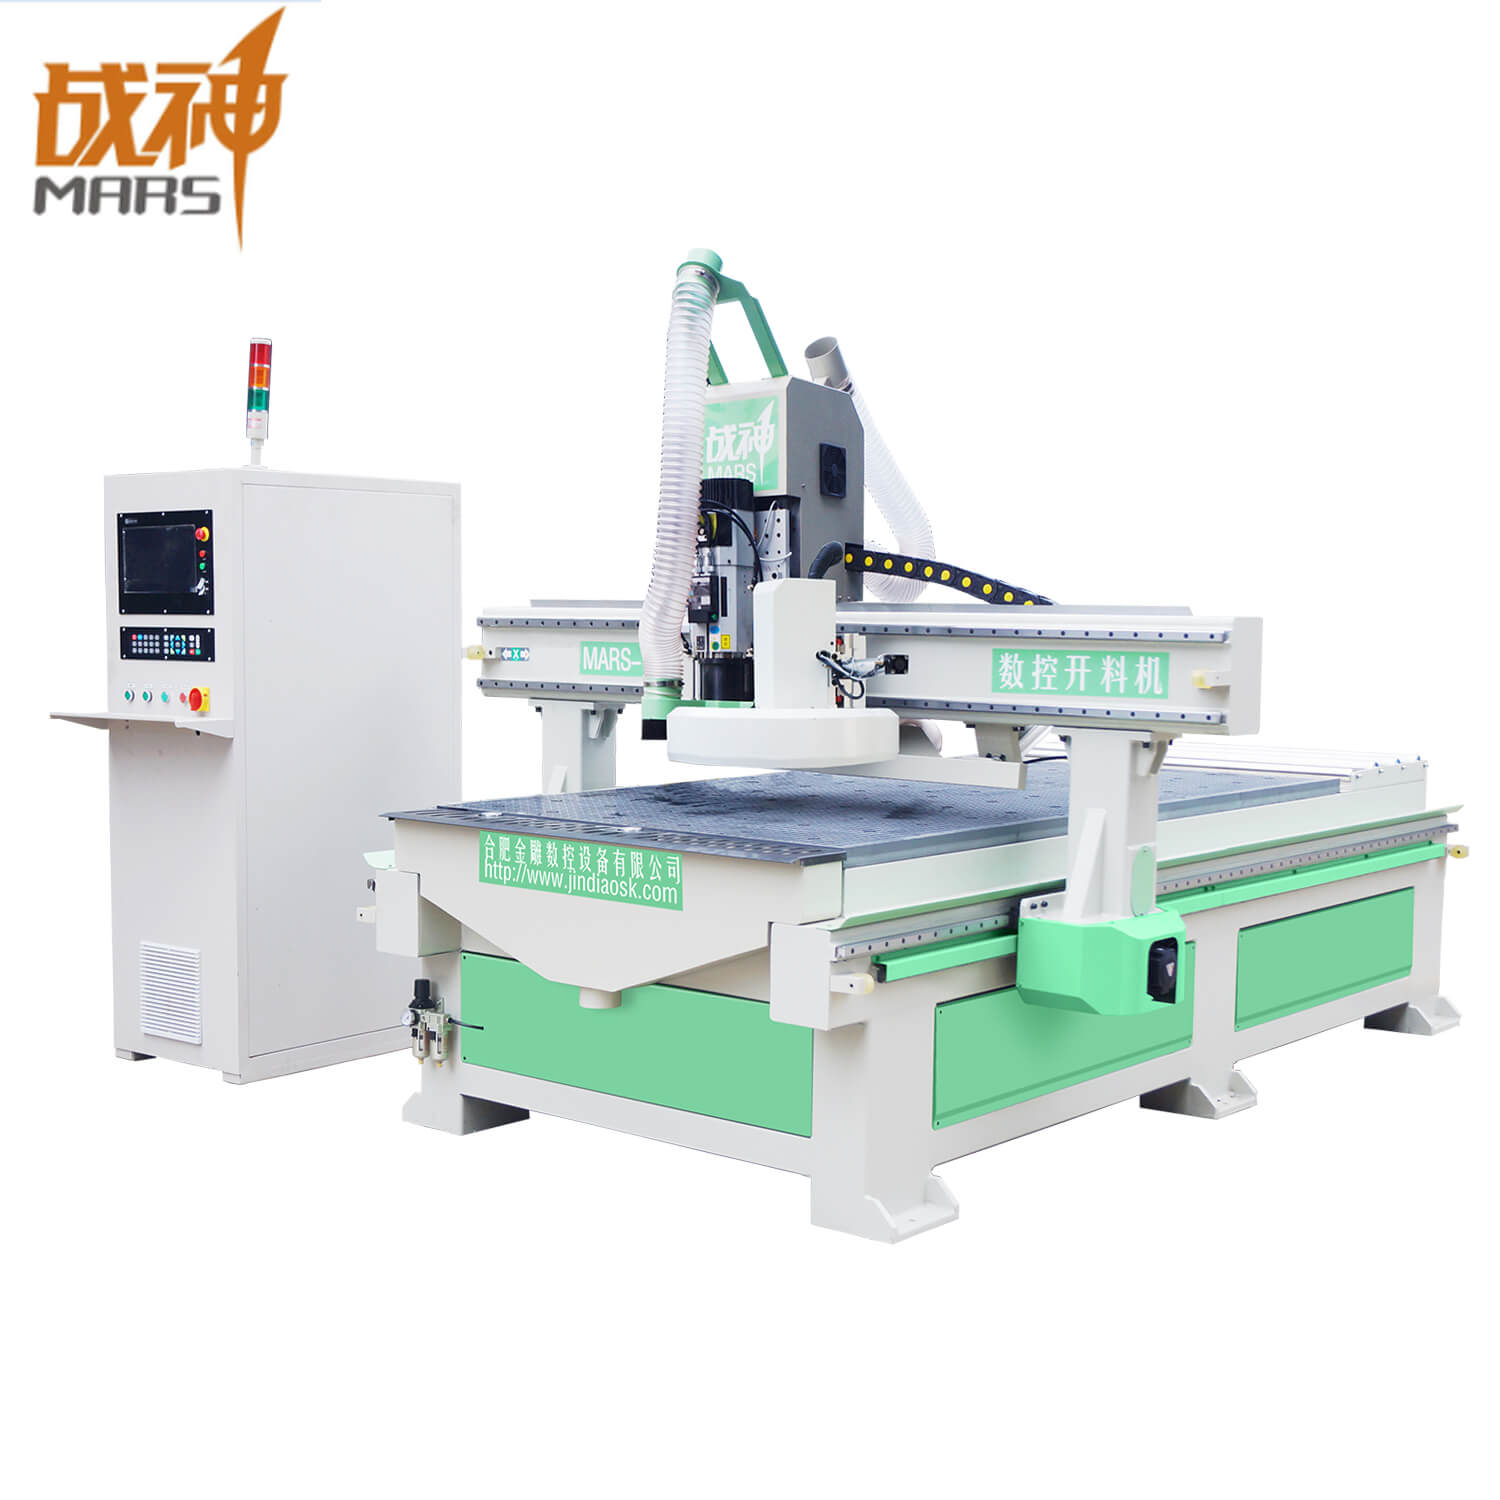 Xs200A Atc CNC Machining Center for Doors Diversified Design